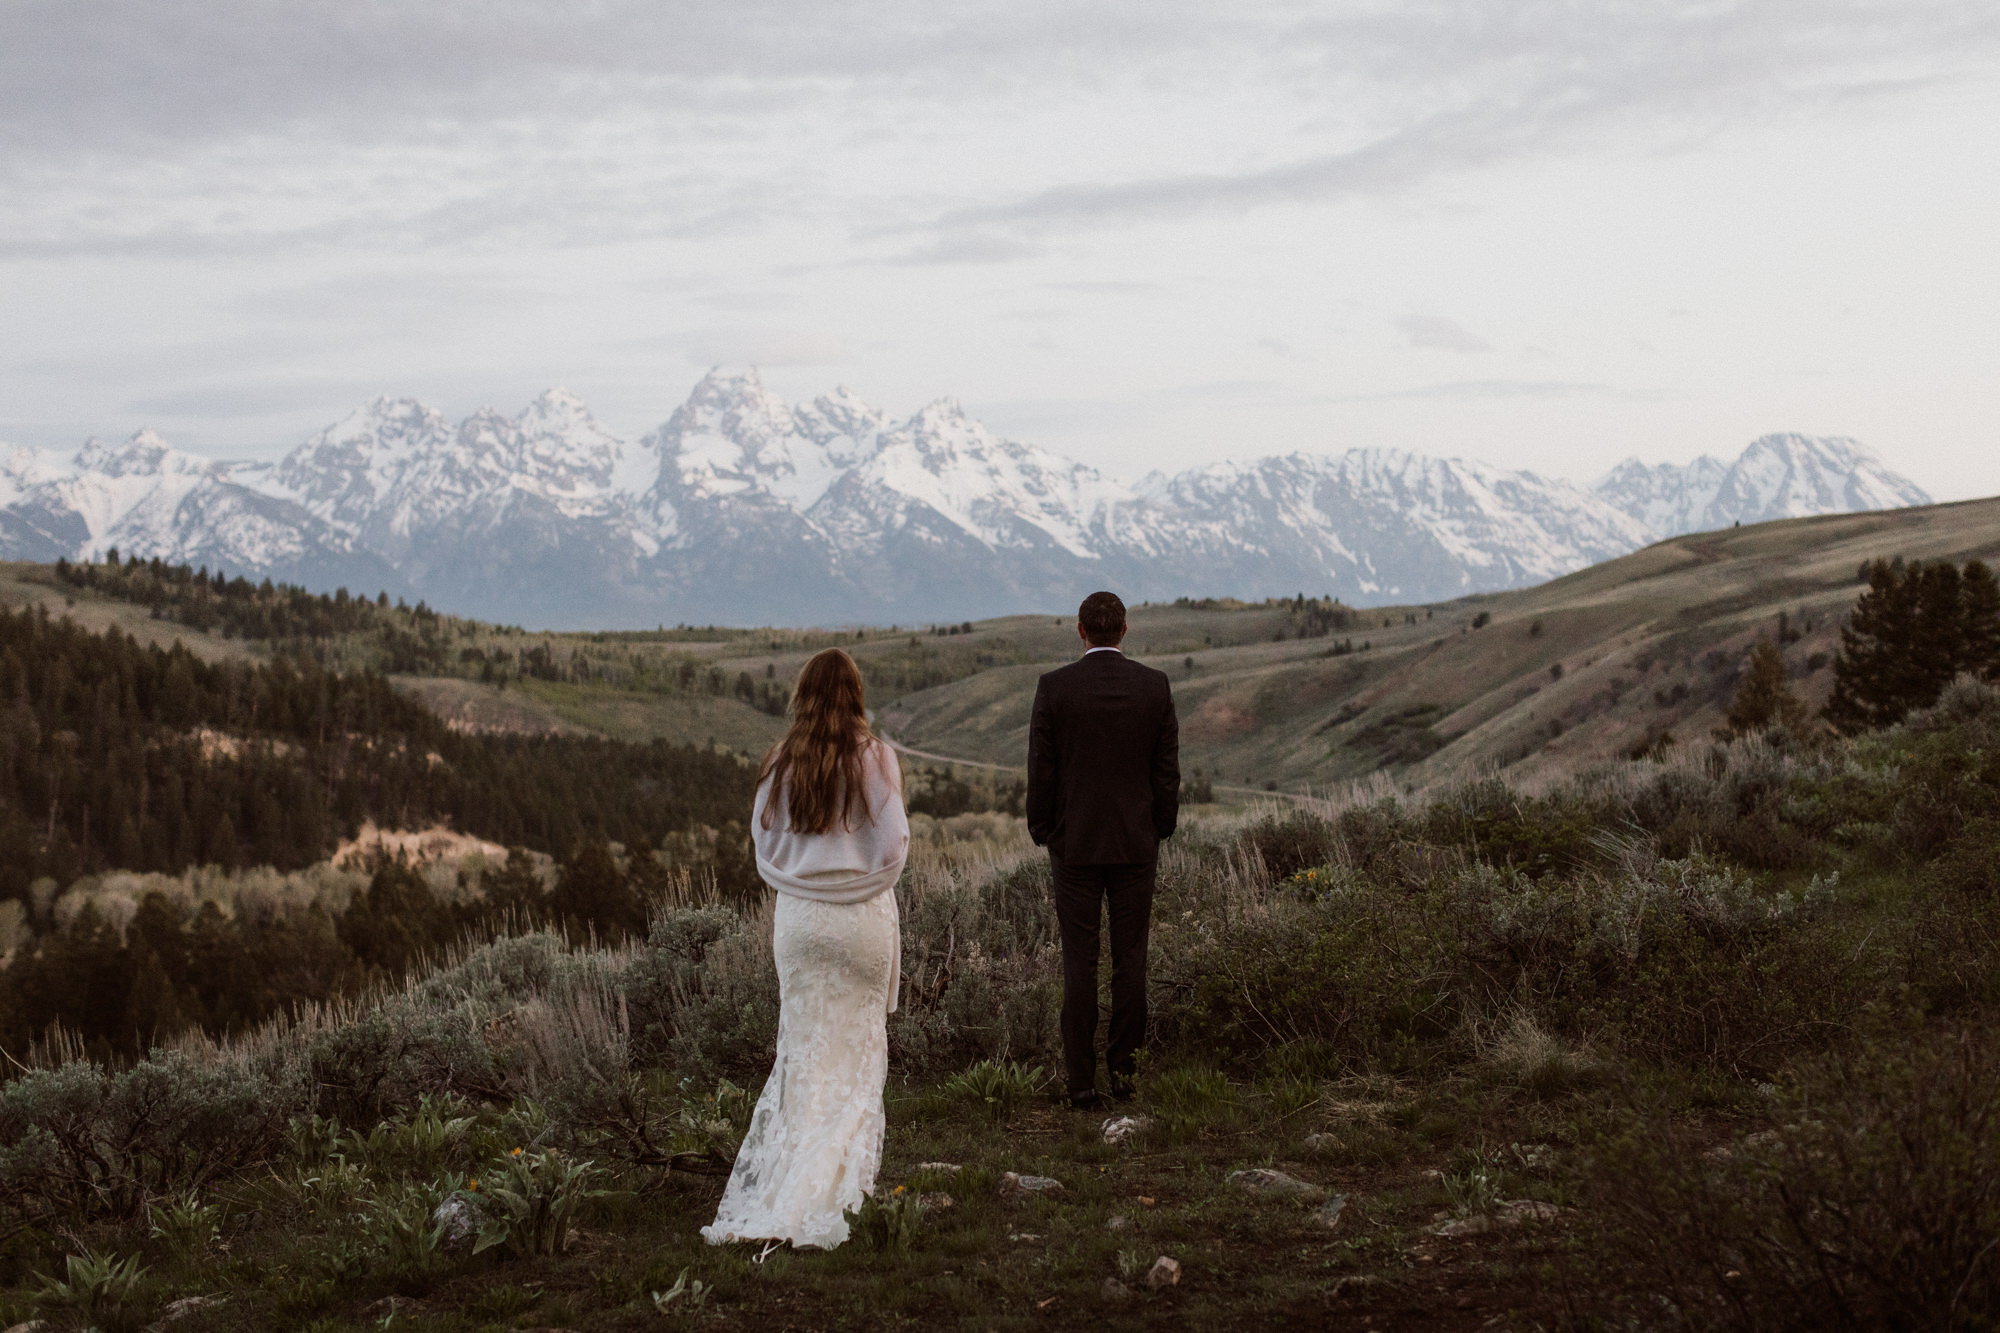 grand-teton-national-park-wedding-1.jpg